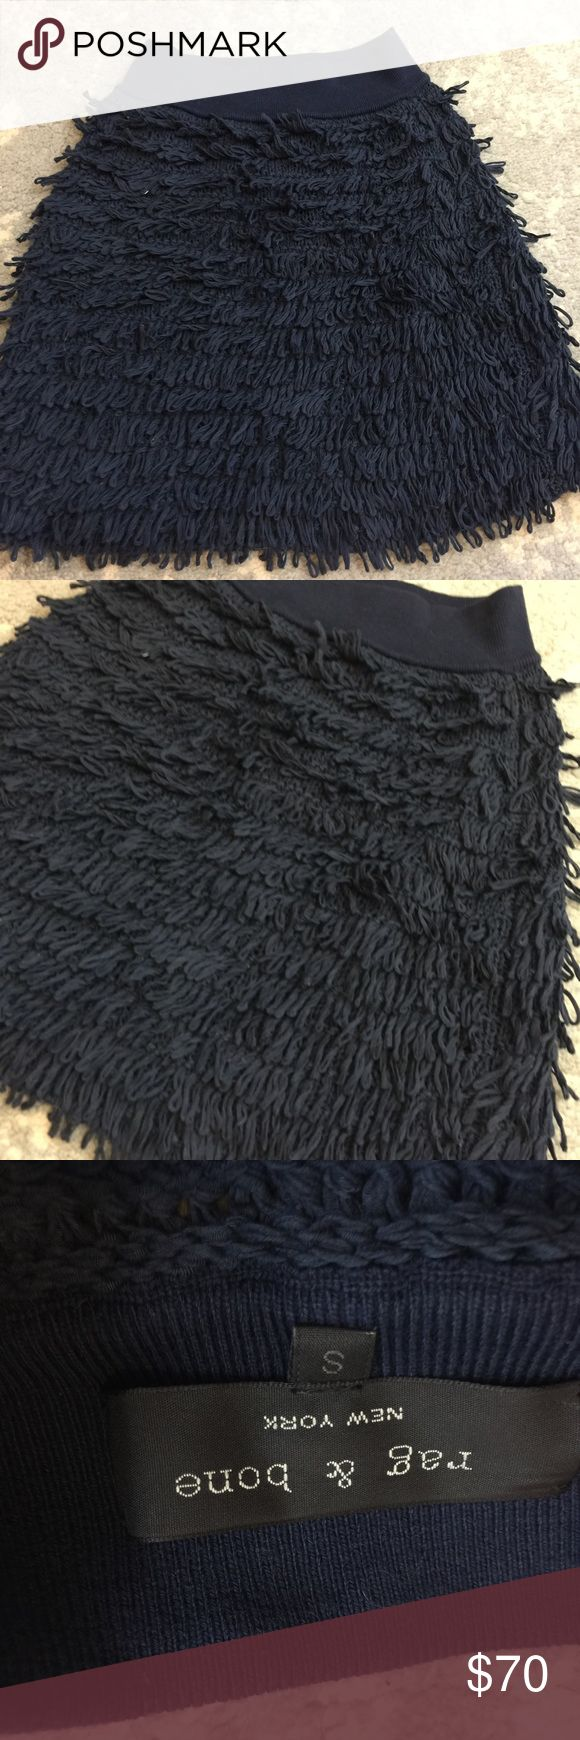 Rag & Bone Navy Looped Yarn Shaggy Mini Skirt Rag & Bone Skirt navy in color with a gorgeous looped knit texture and is tiered with no lining. Short and has a ribbed waistband. Size small and is super gorgeous and modern. rag & bone Skirts